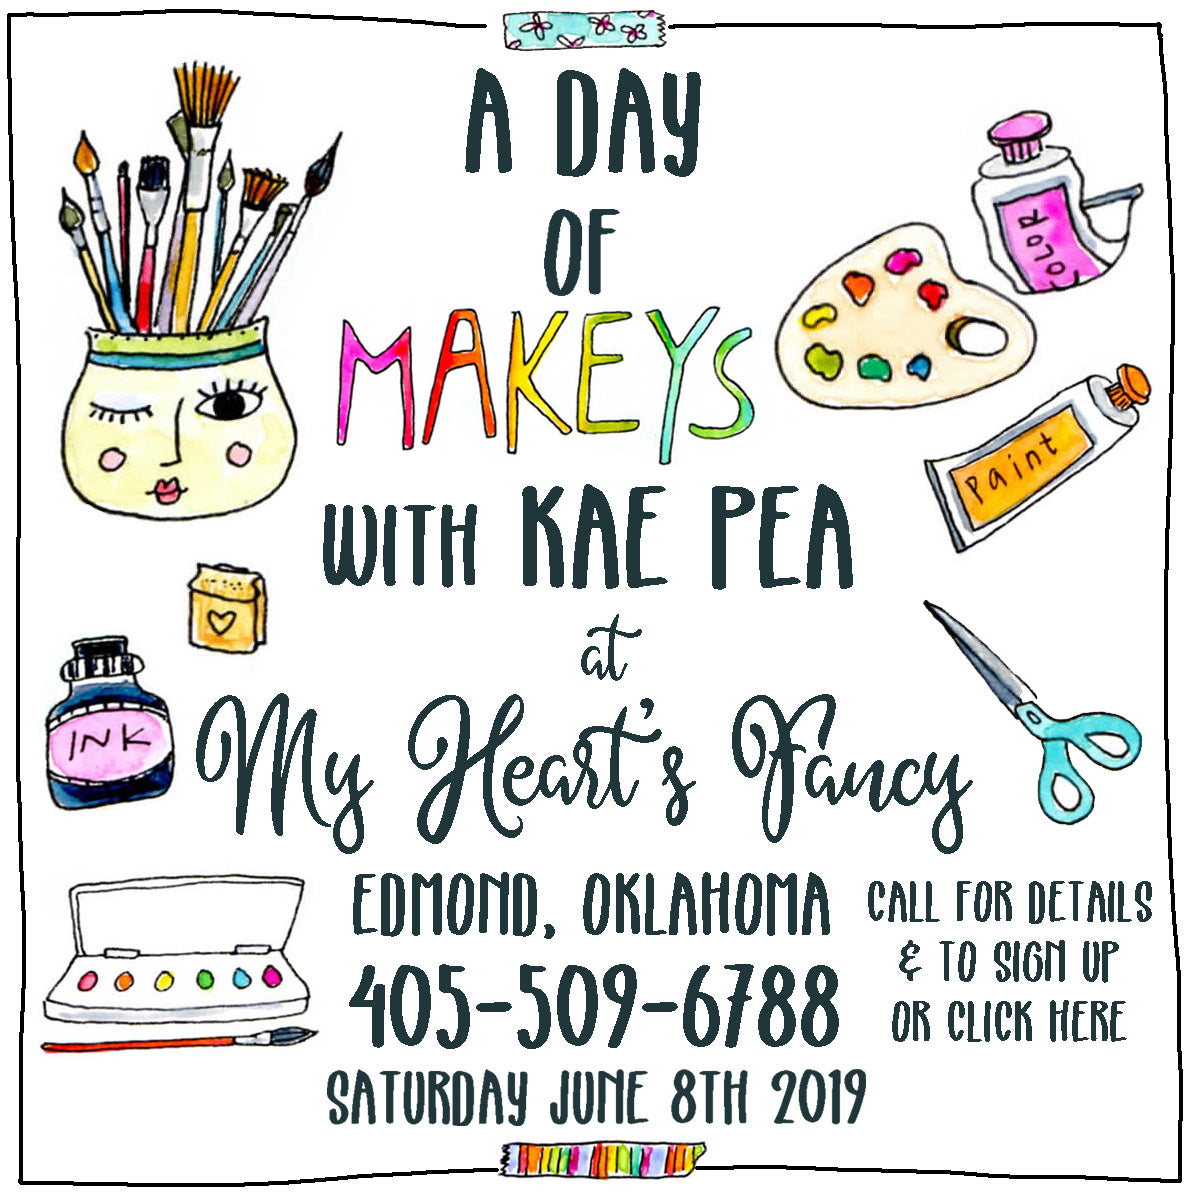 Join Kae Pea and The 'Moon for a day of Makeys @ My Hearts Fancy